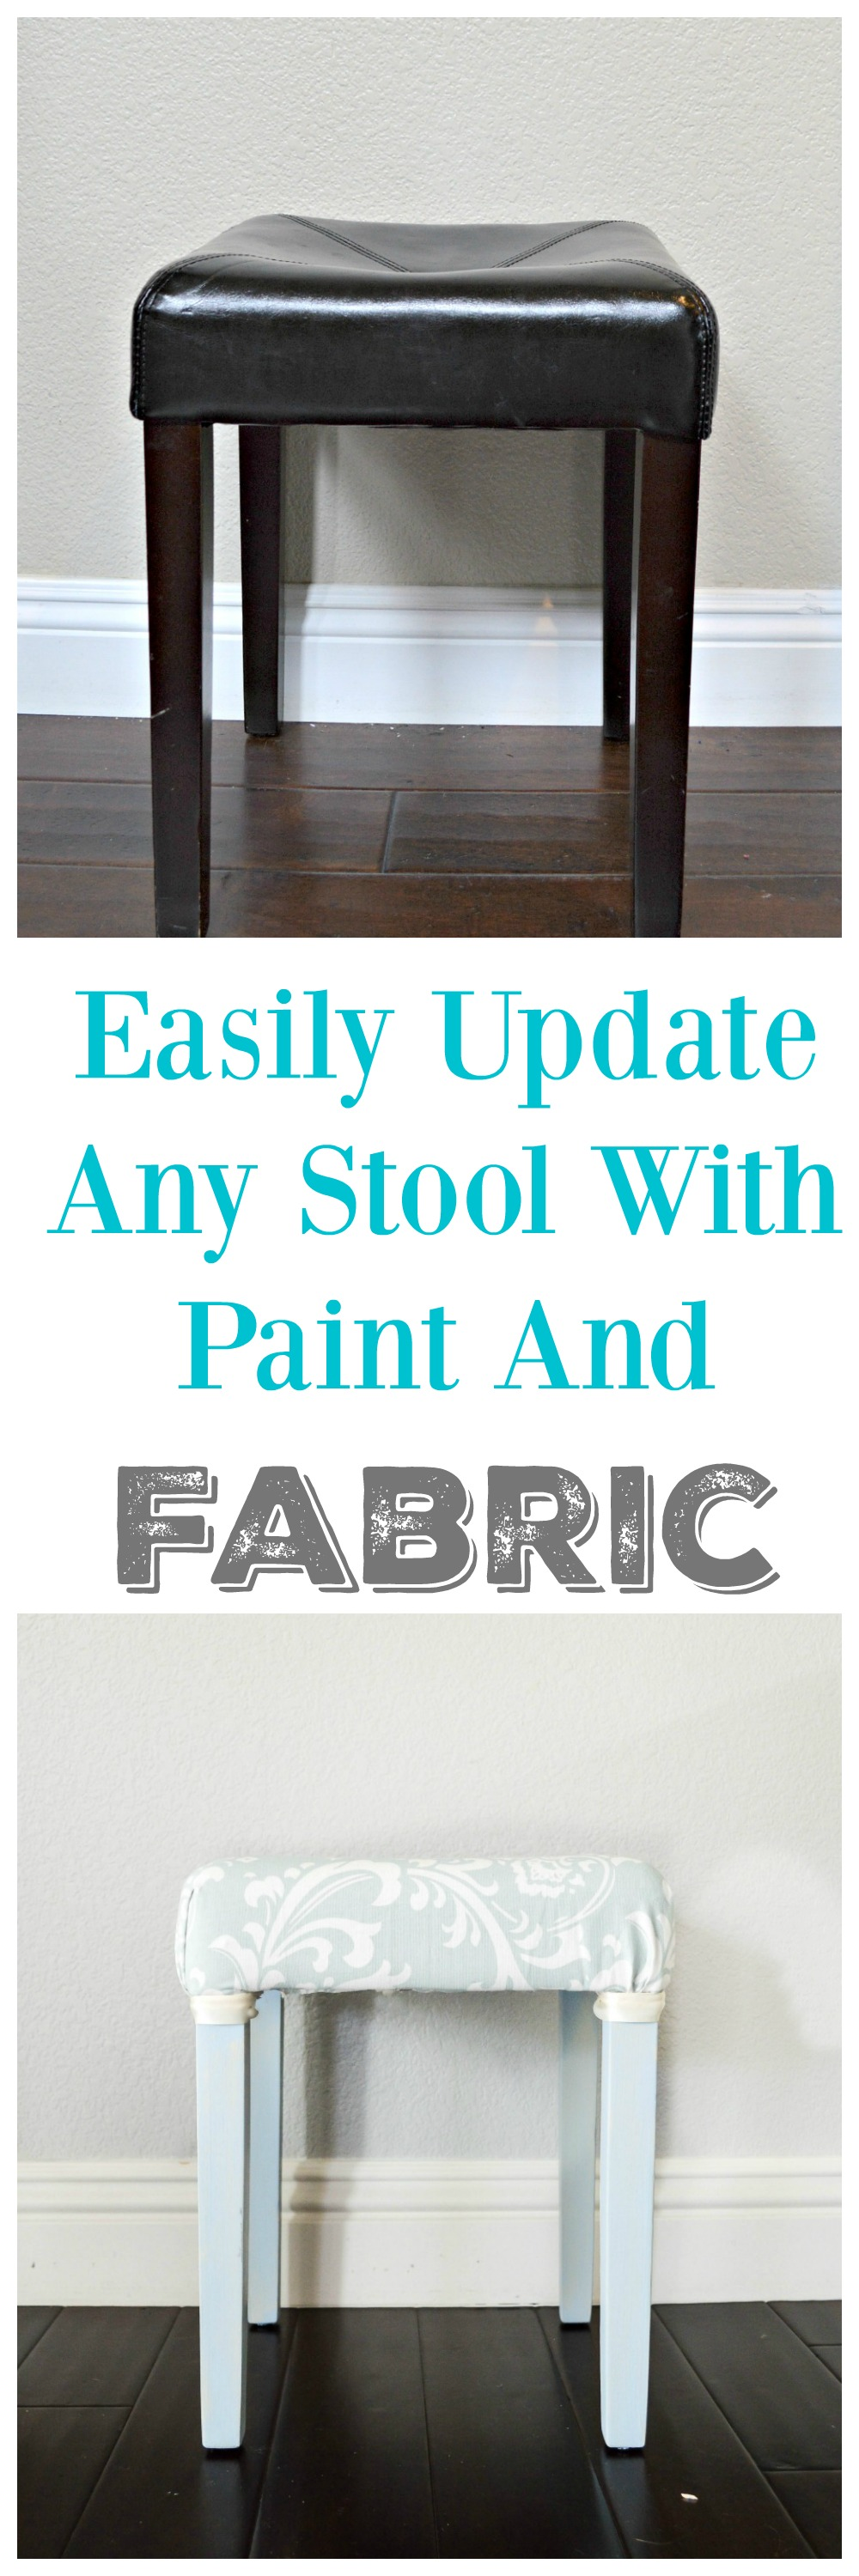 How to easily update a vanity stool